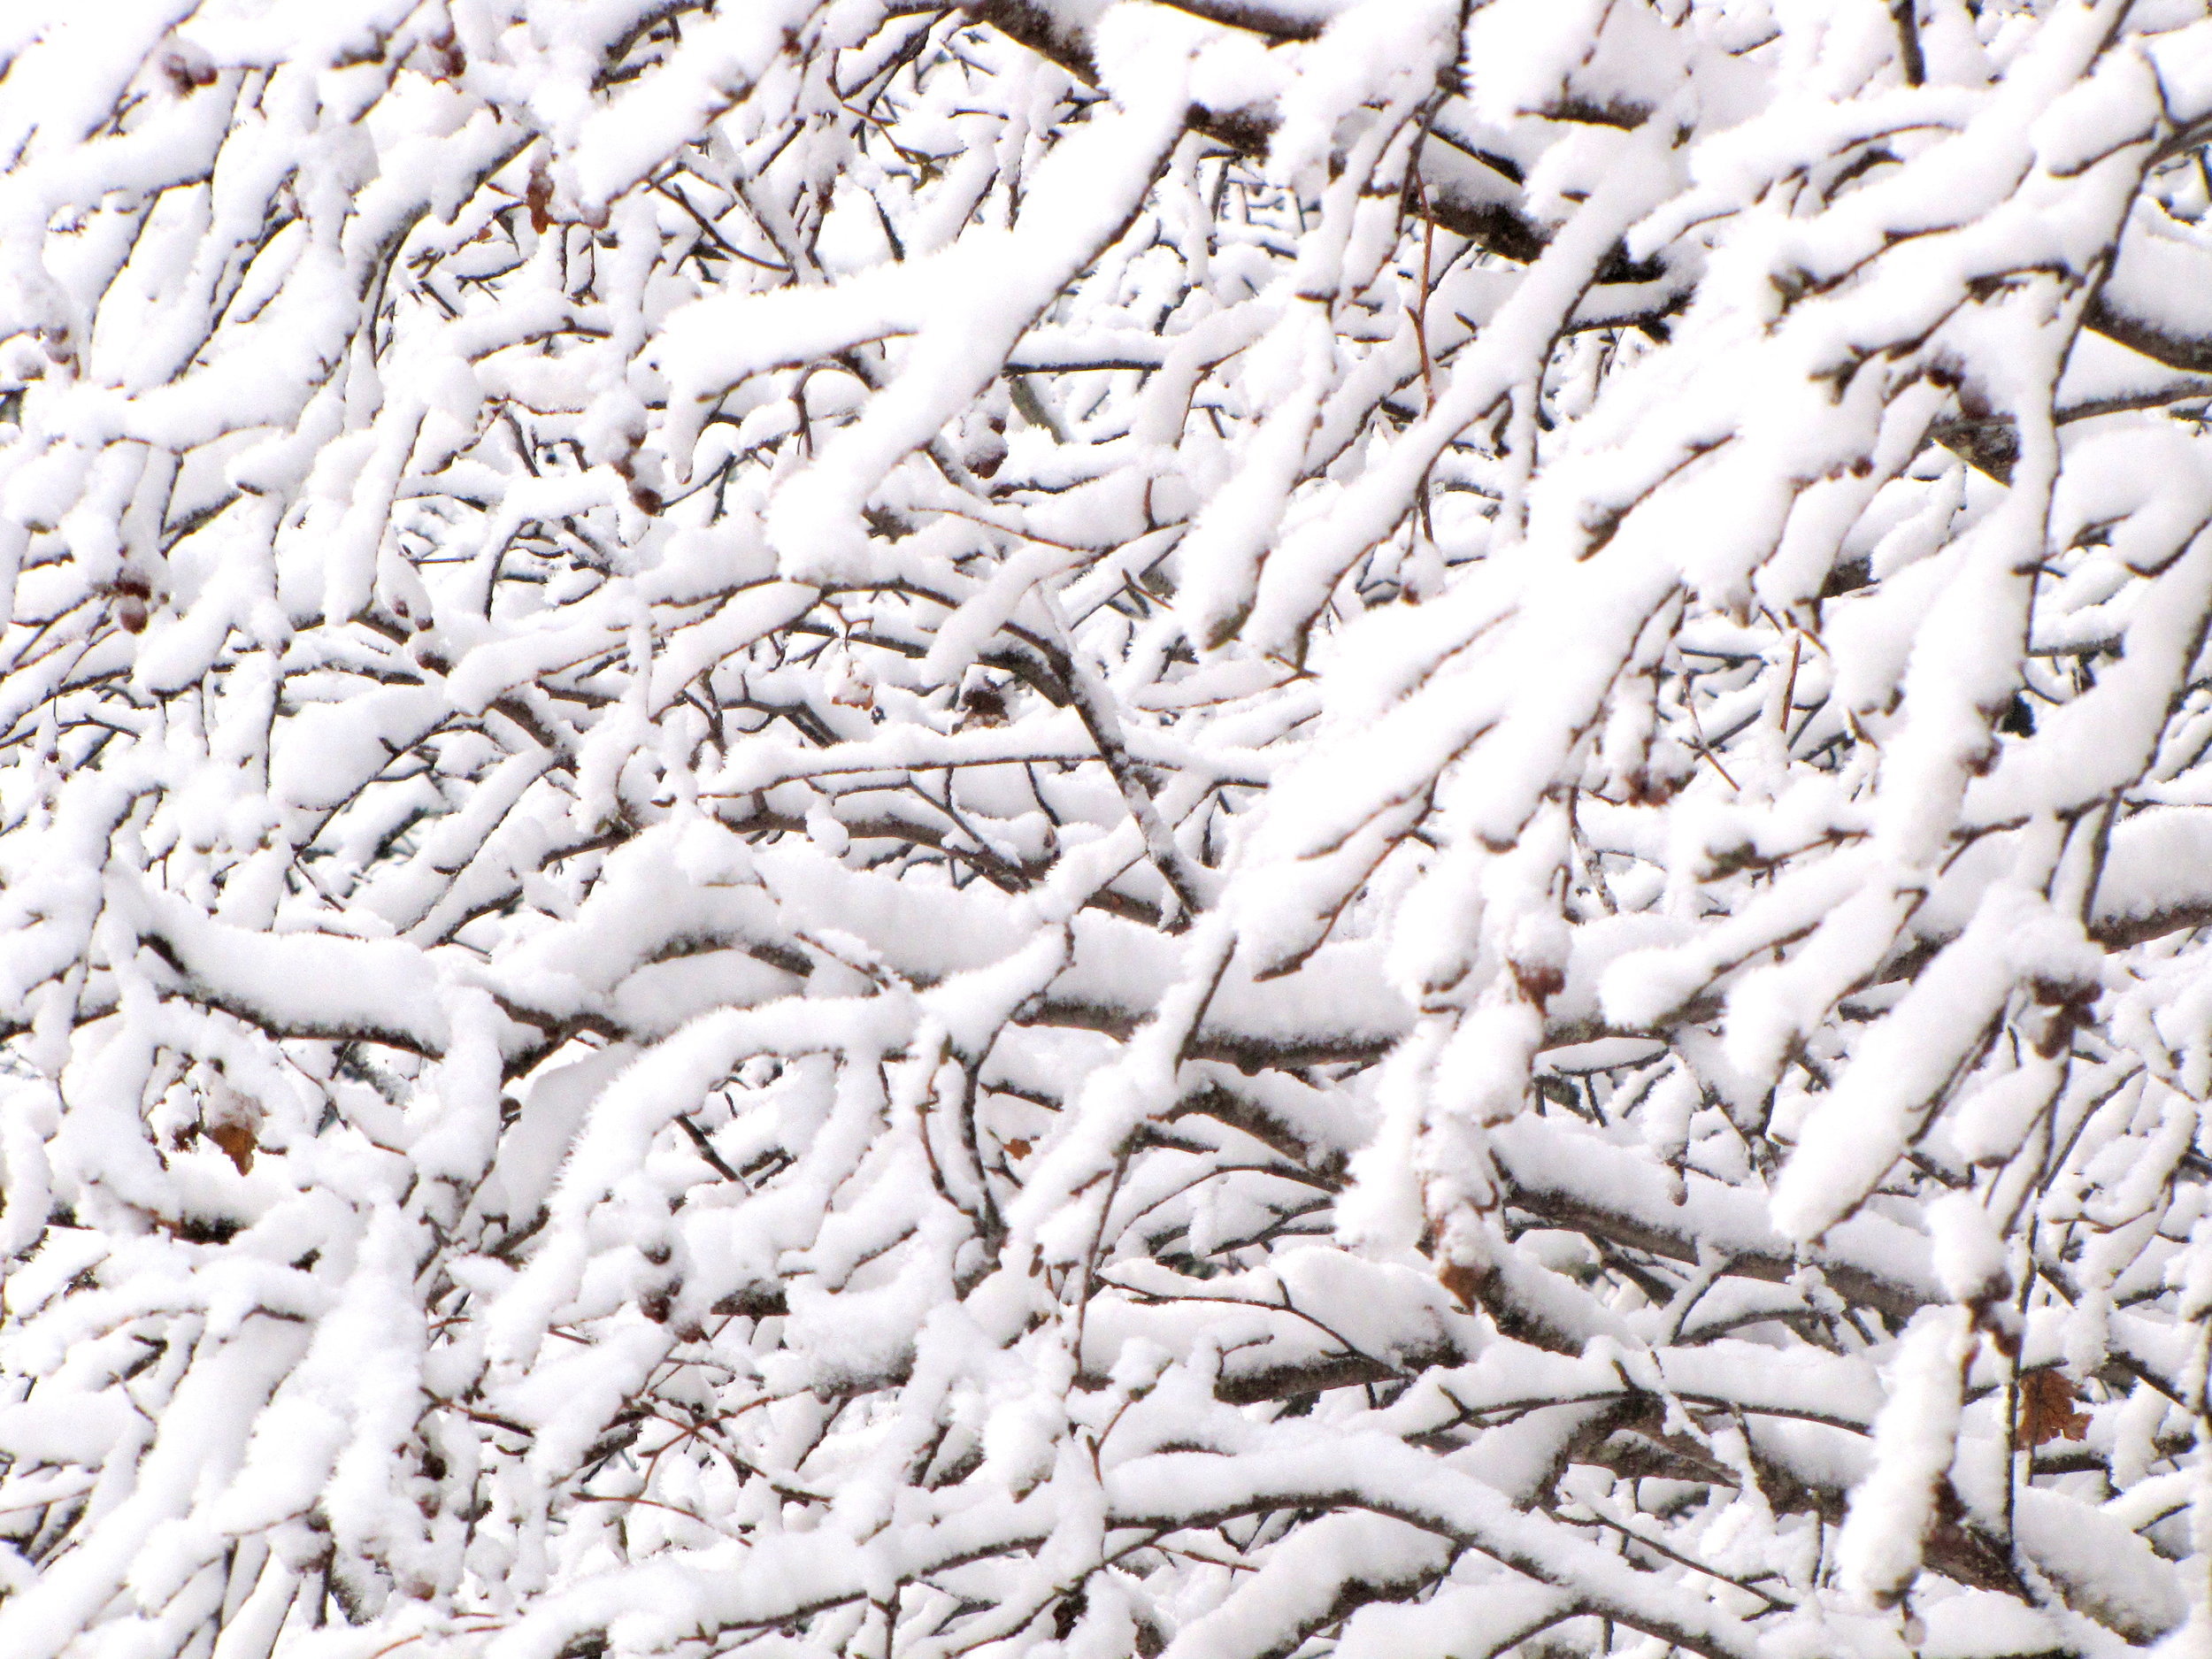 In the calm interior of Alaska, powder snow accumulates on every branch in the alder and willow thickets.